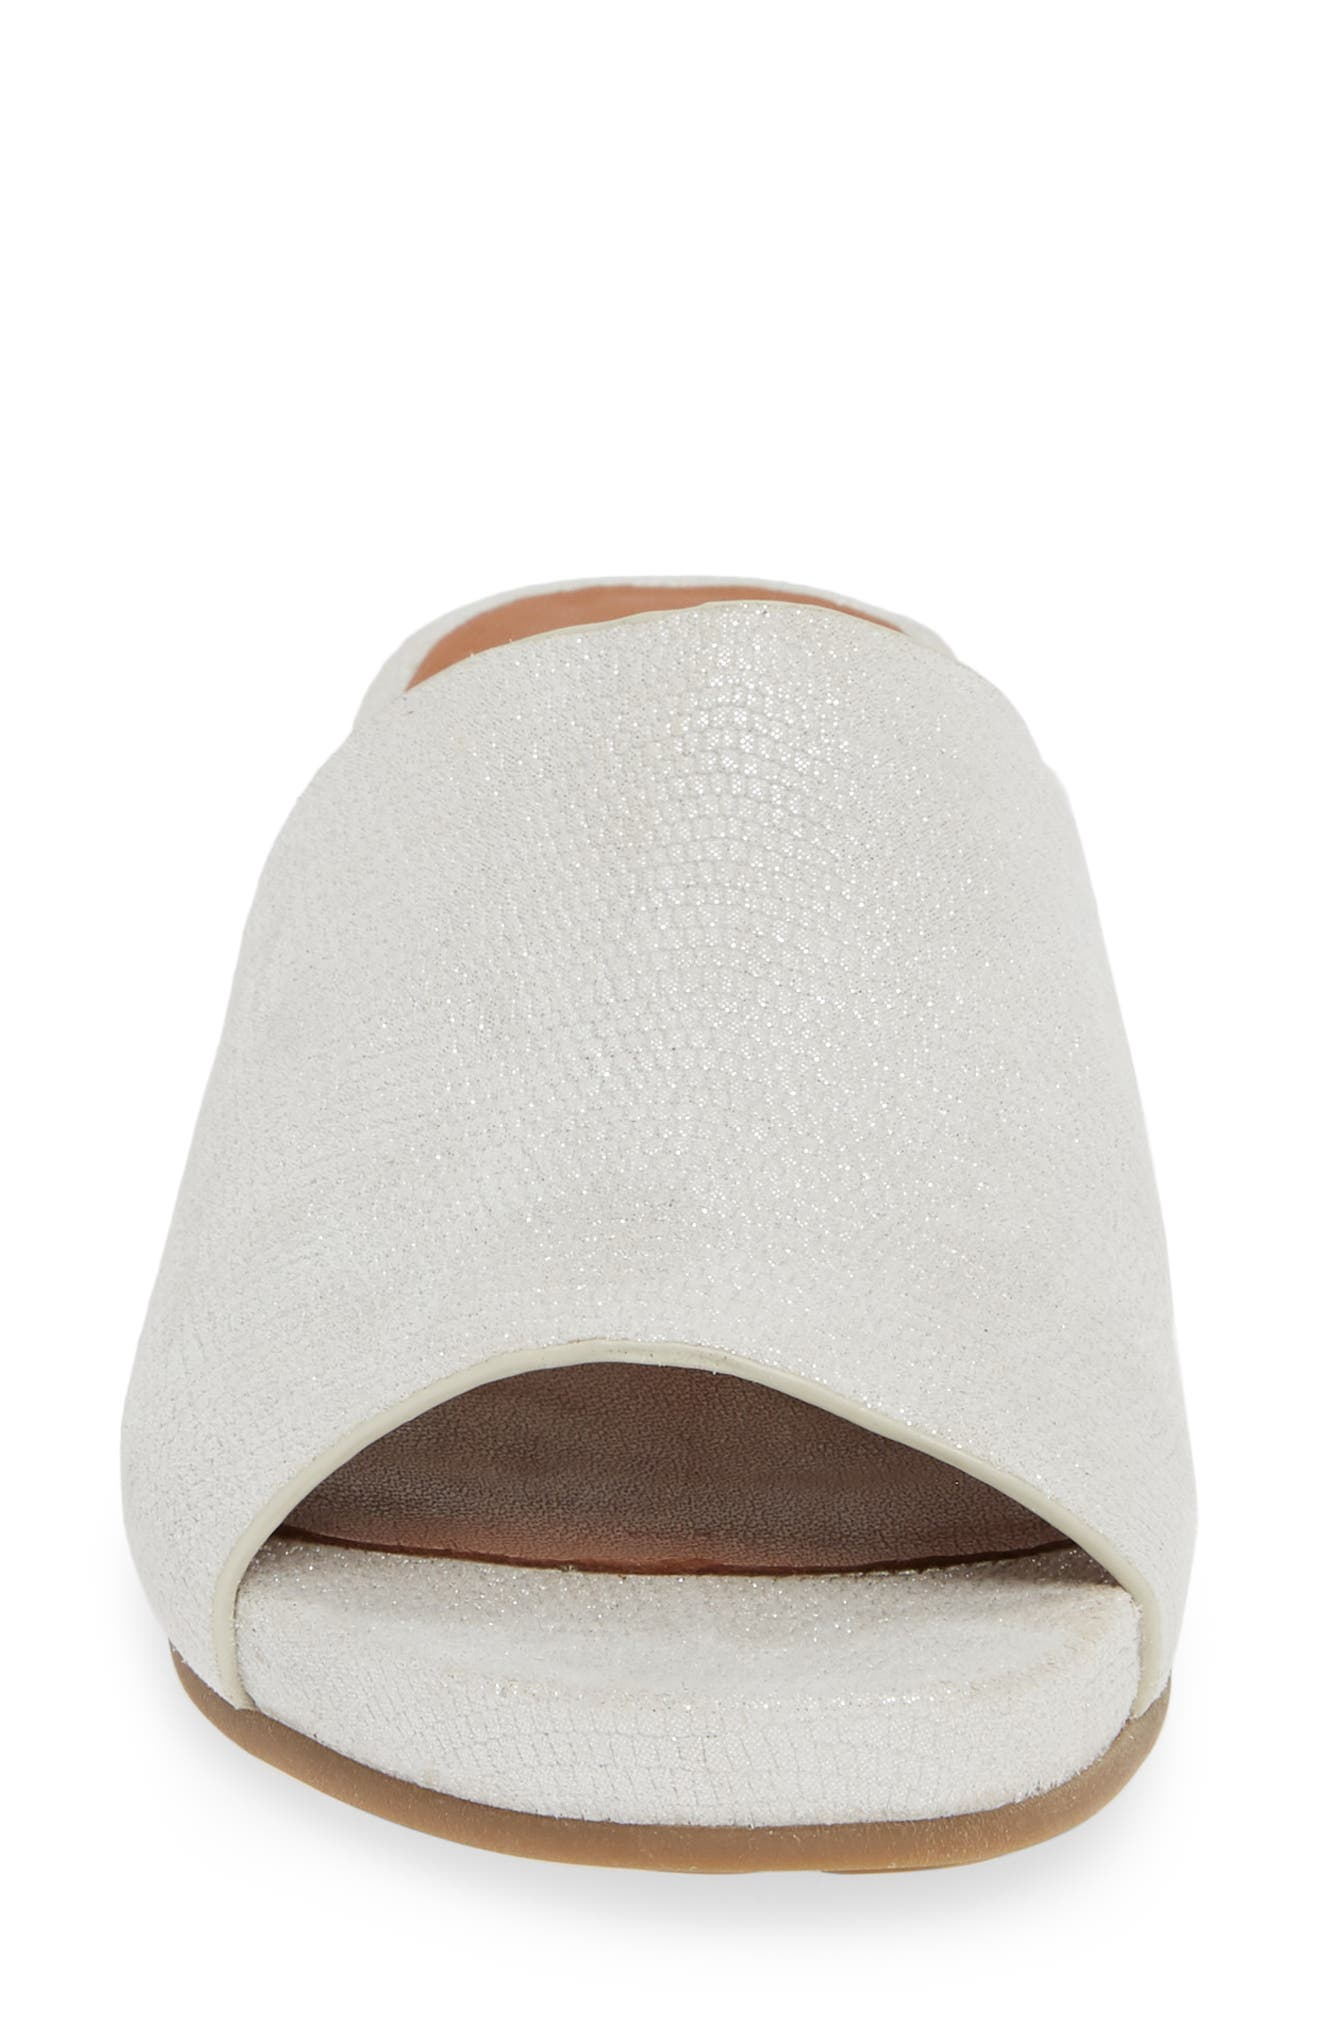 GENTLE SOULS BY KENNETH COLE, Gisele Wedge Slide Sandal, Alternate thumbnail 4, color, WHITE EMBOSSED LEATHER